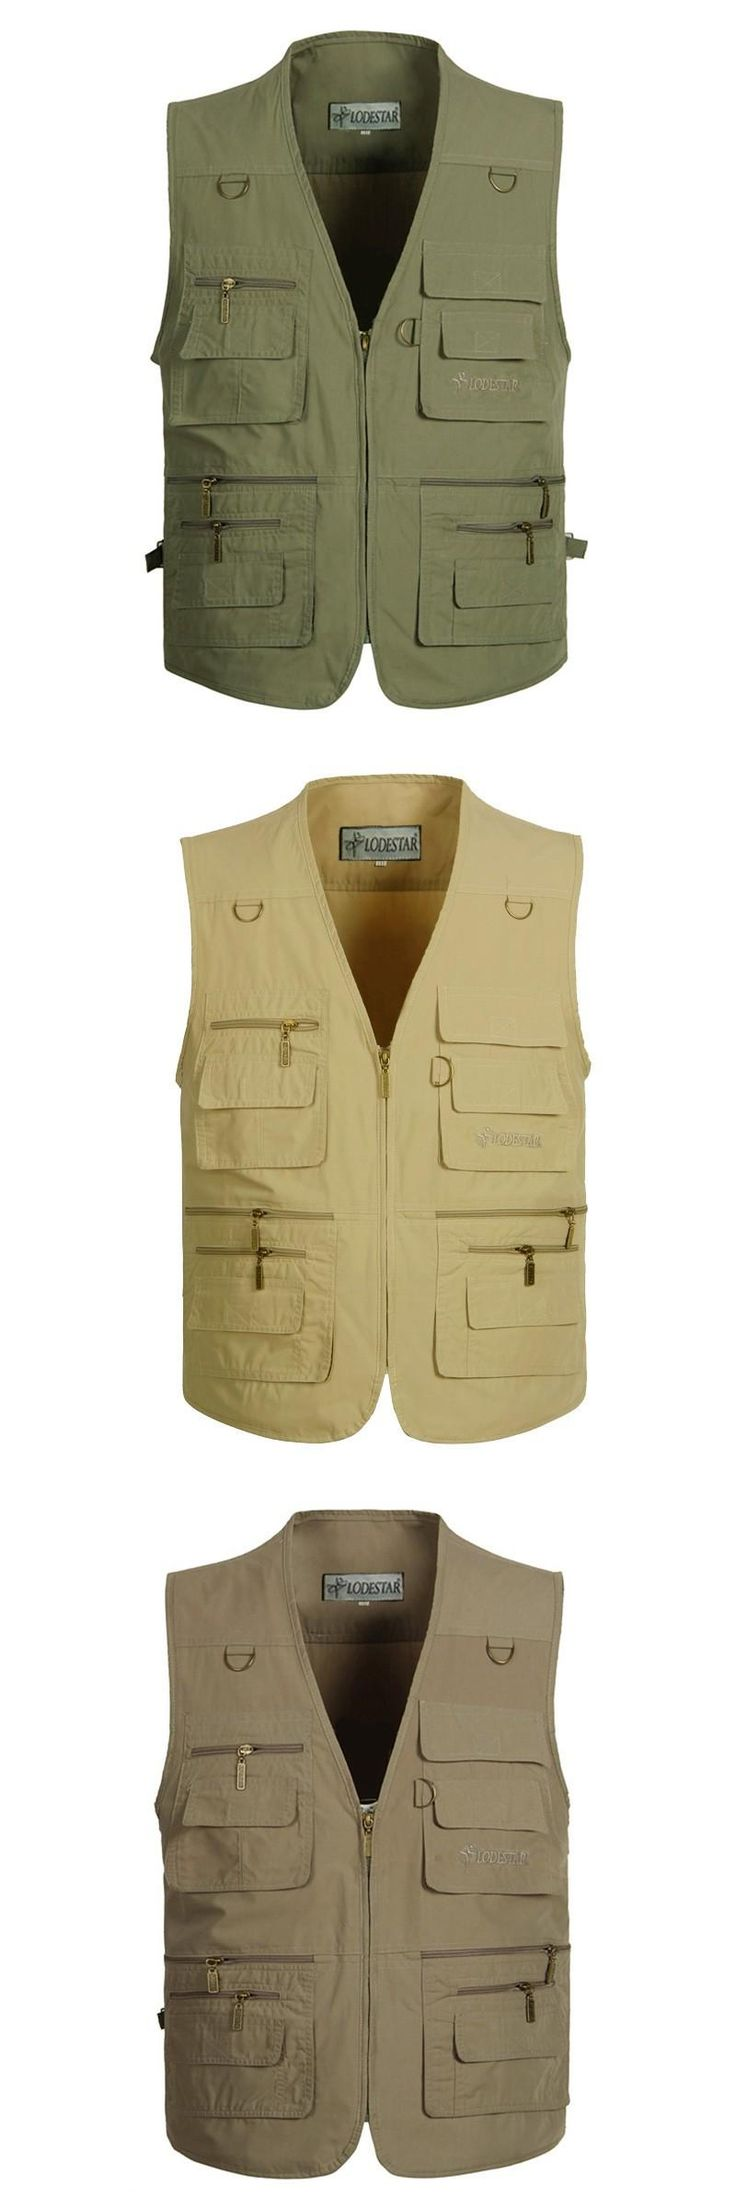 Men's Vest With Many Pockets Casual Reporter Vests Cotton Photographer Vests Travel Shooting Vests Plus Size XL-5XL Three Colors